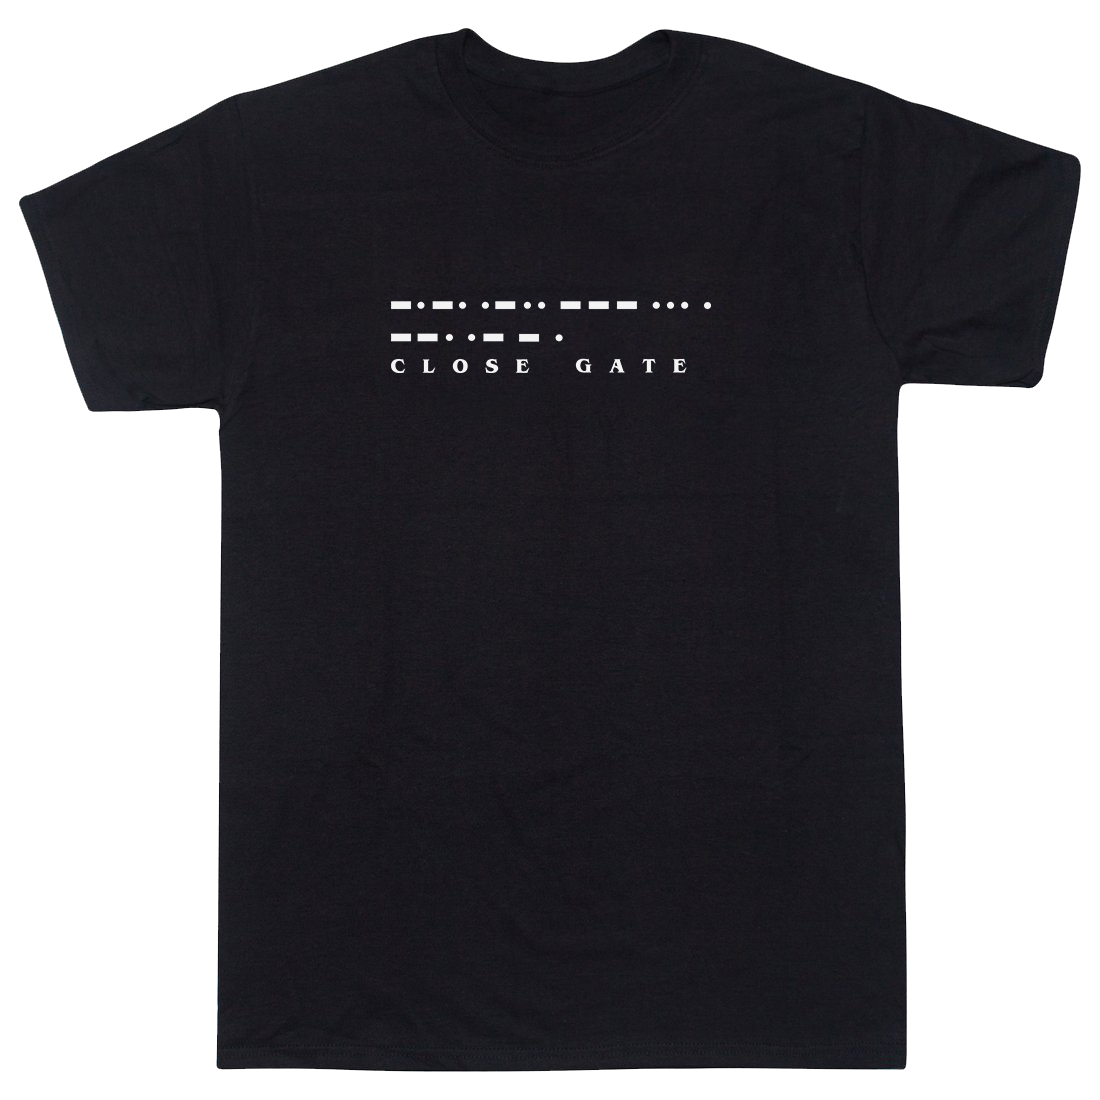 CLOSE GATE Black T-Shirt - Culture Clothing